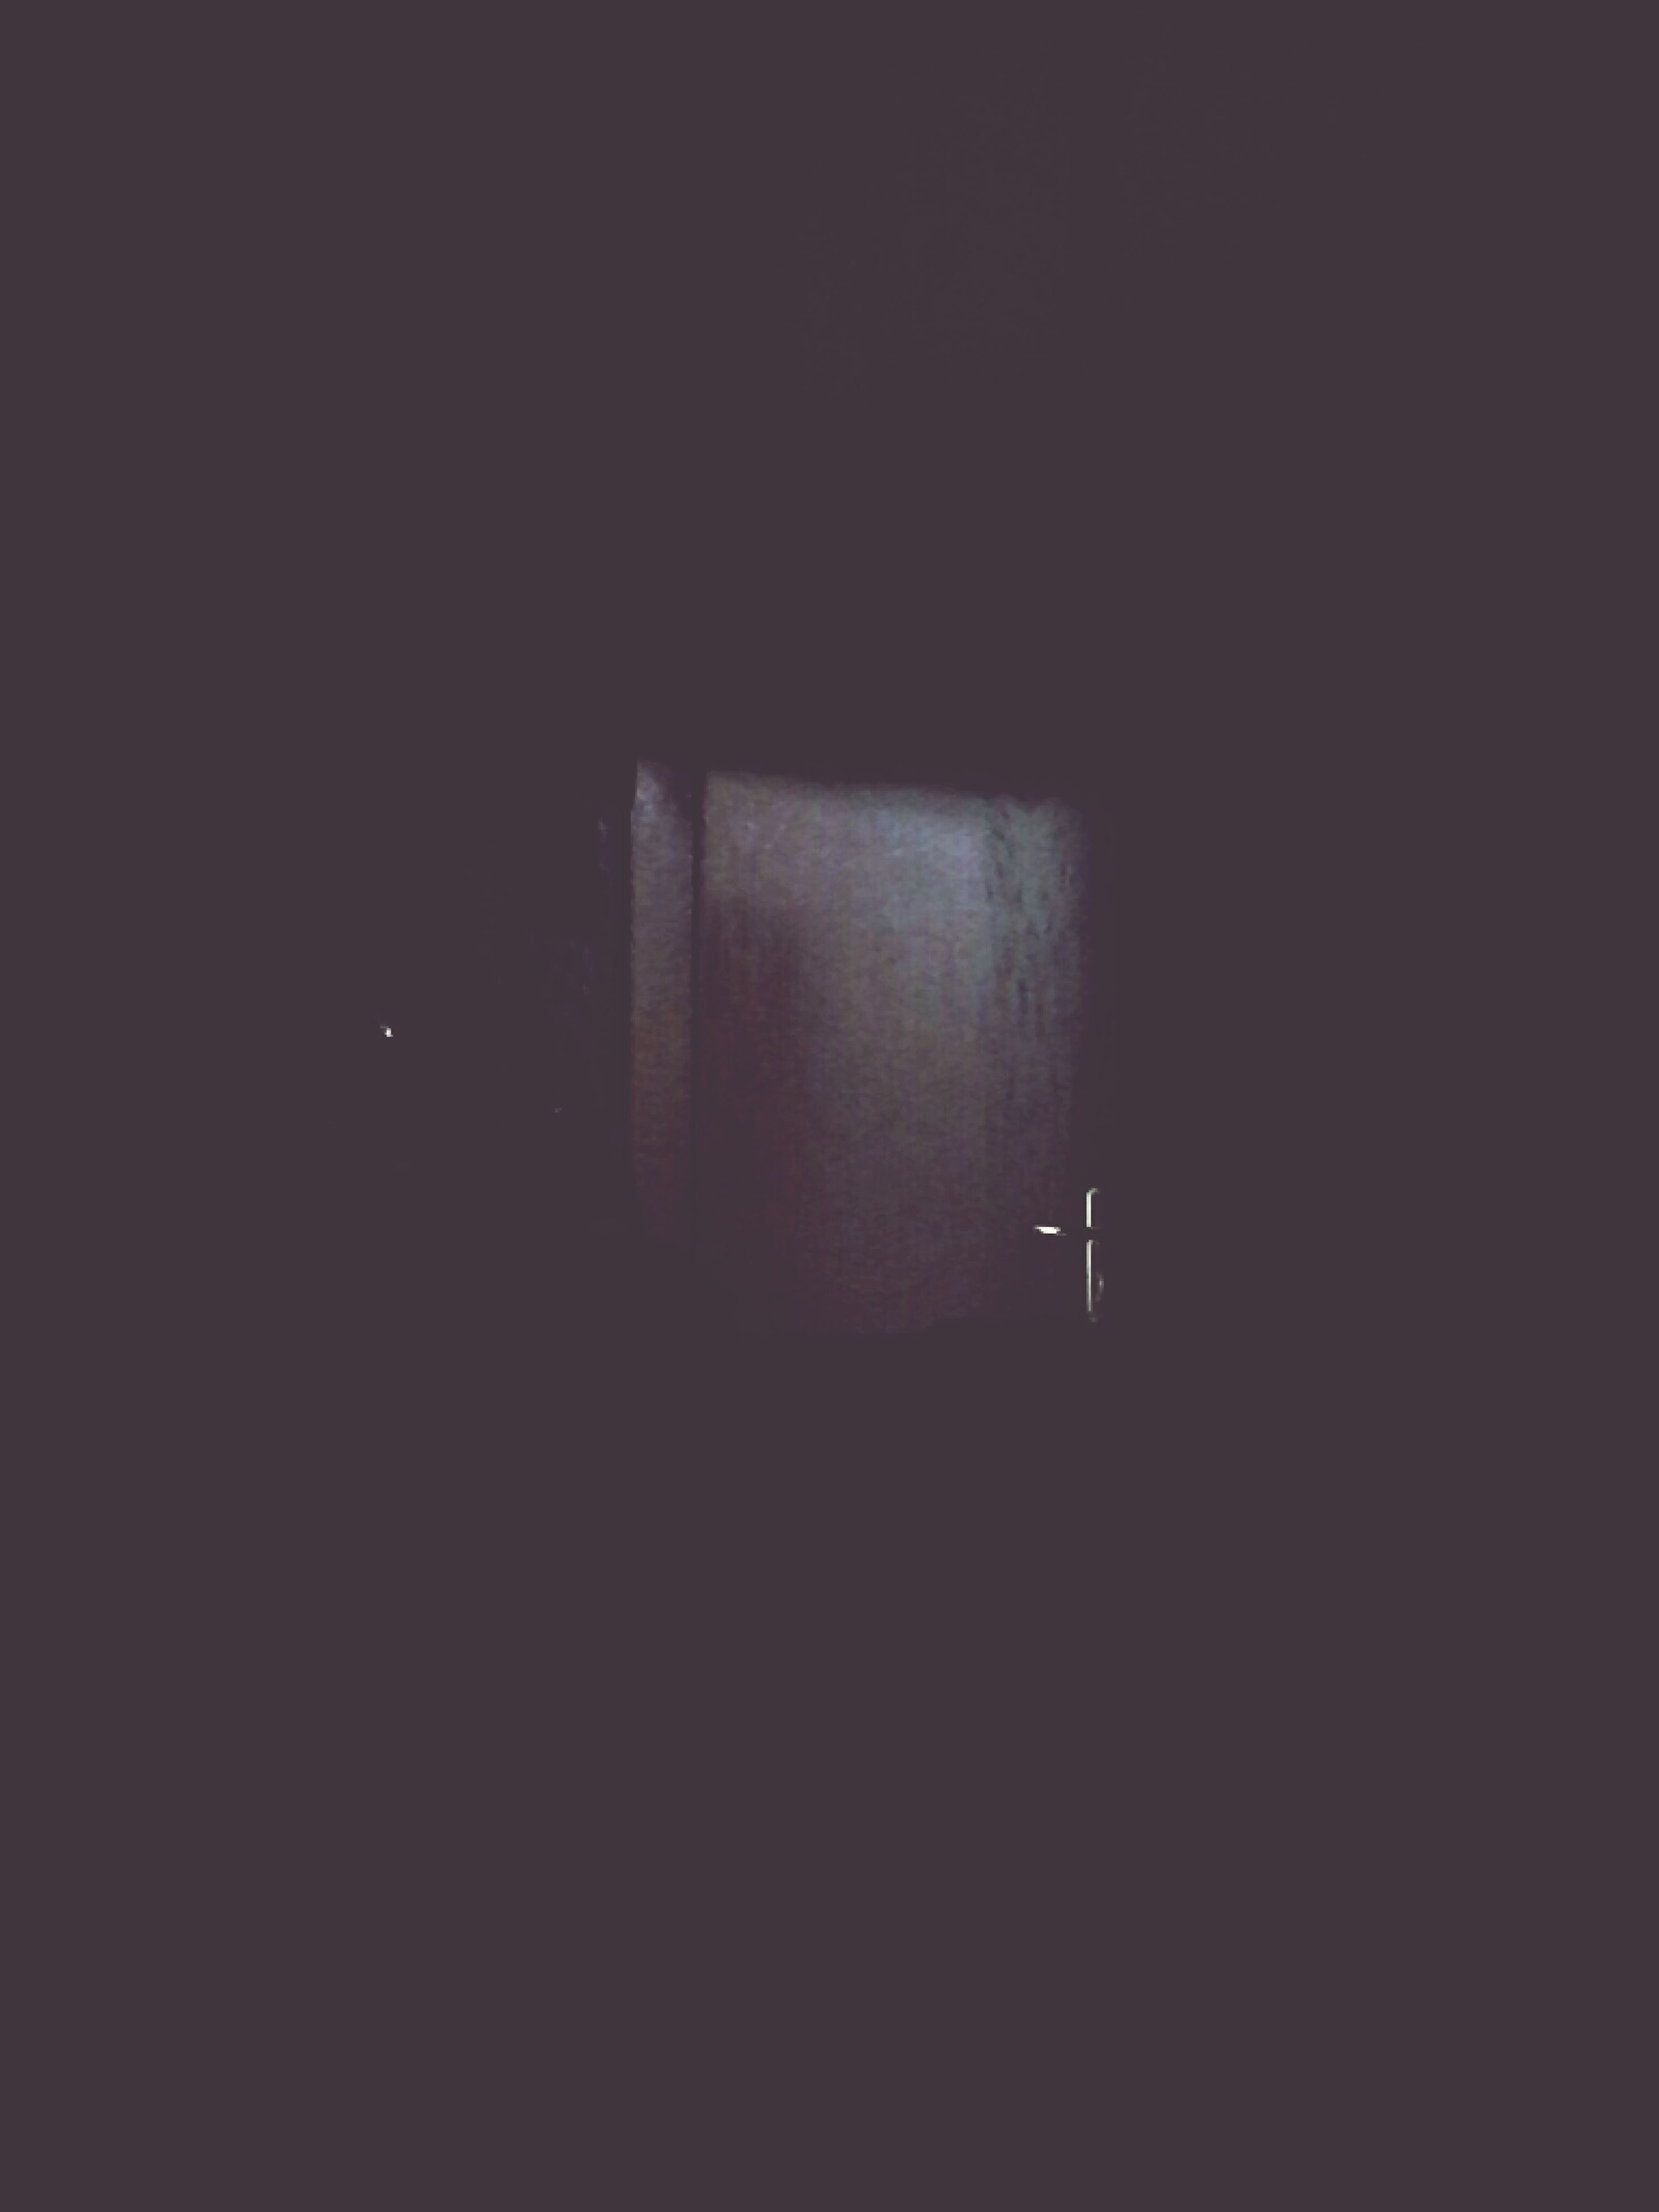 indoors, dark, copy space, illuminated, night, darkroom, lighting equipment, wall - building feature, window, no people, built structure, architecture, light - natural phenomenon, wall, electricity, studio shot, black background, home interior, low angle view, reflection